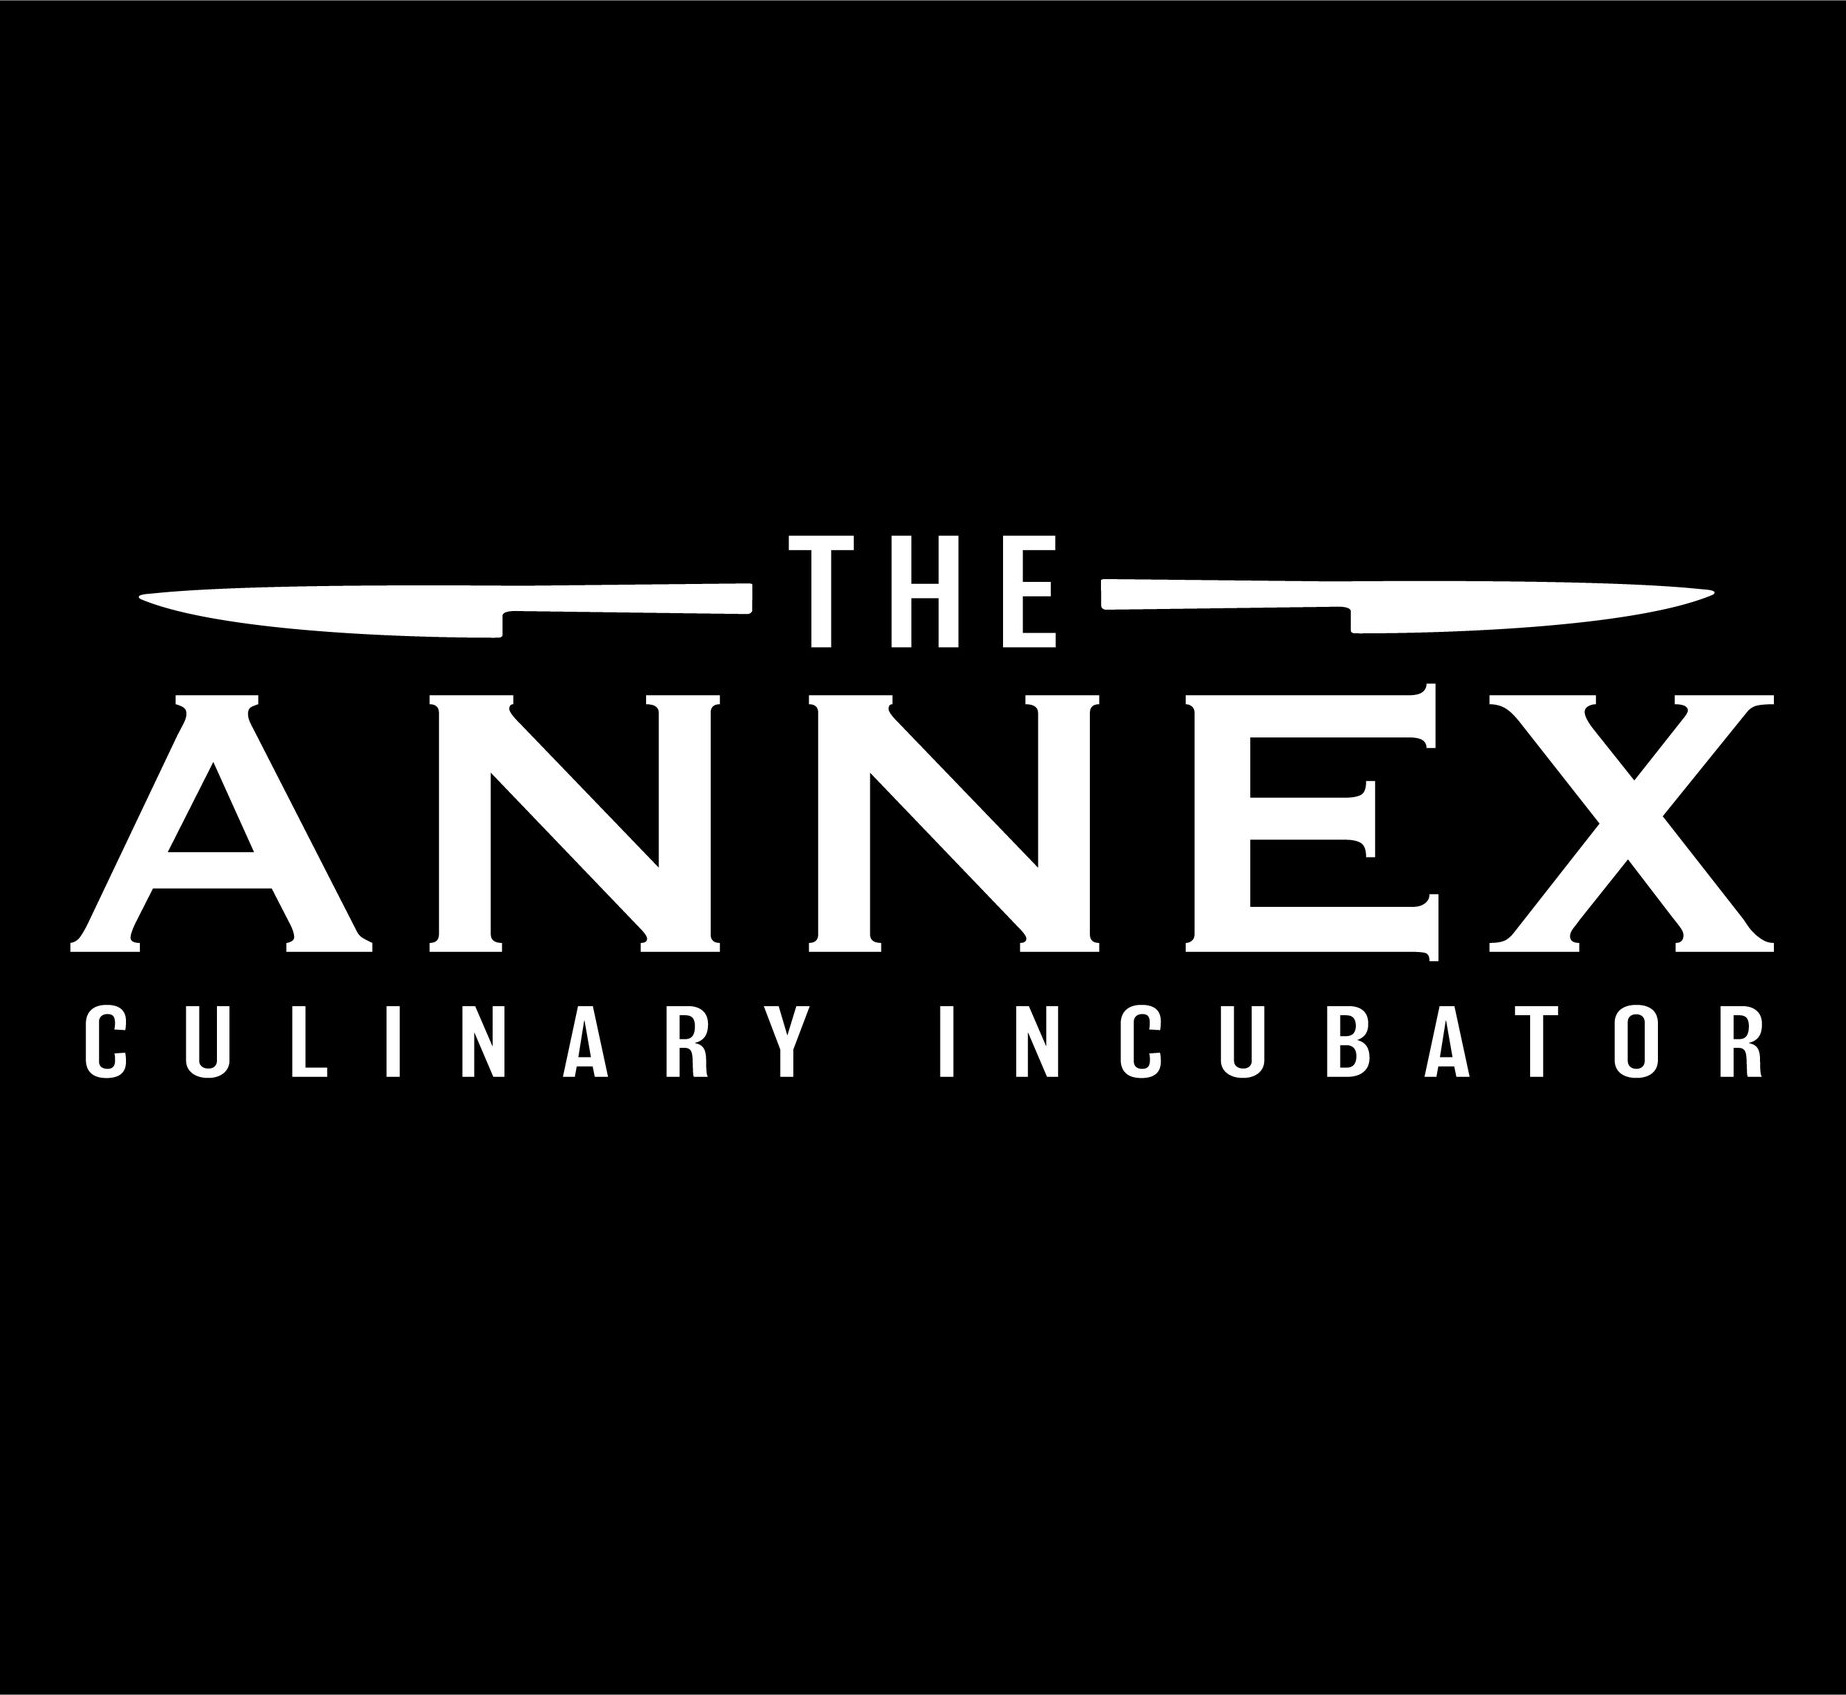 The Annex - Haden Smith, Owner